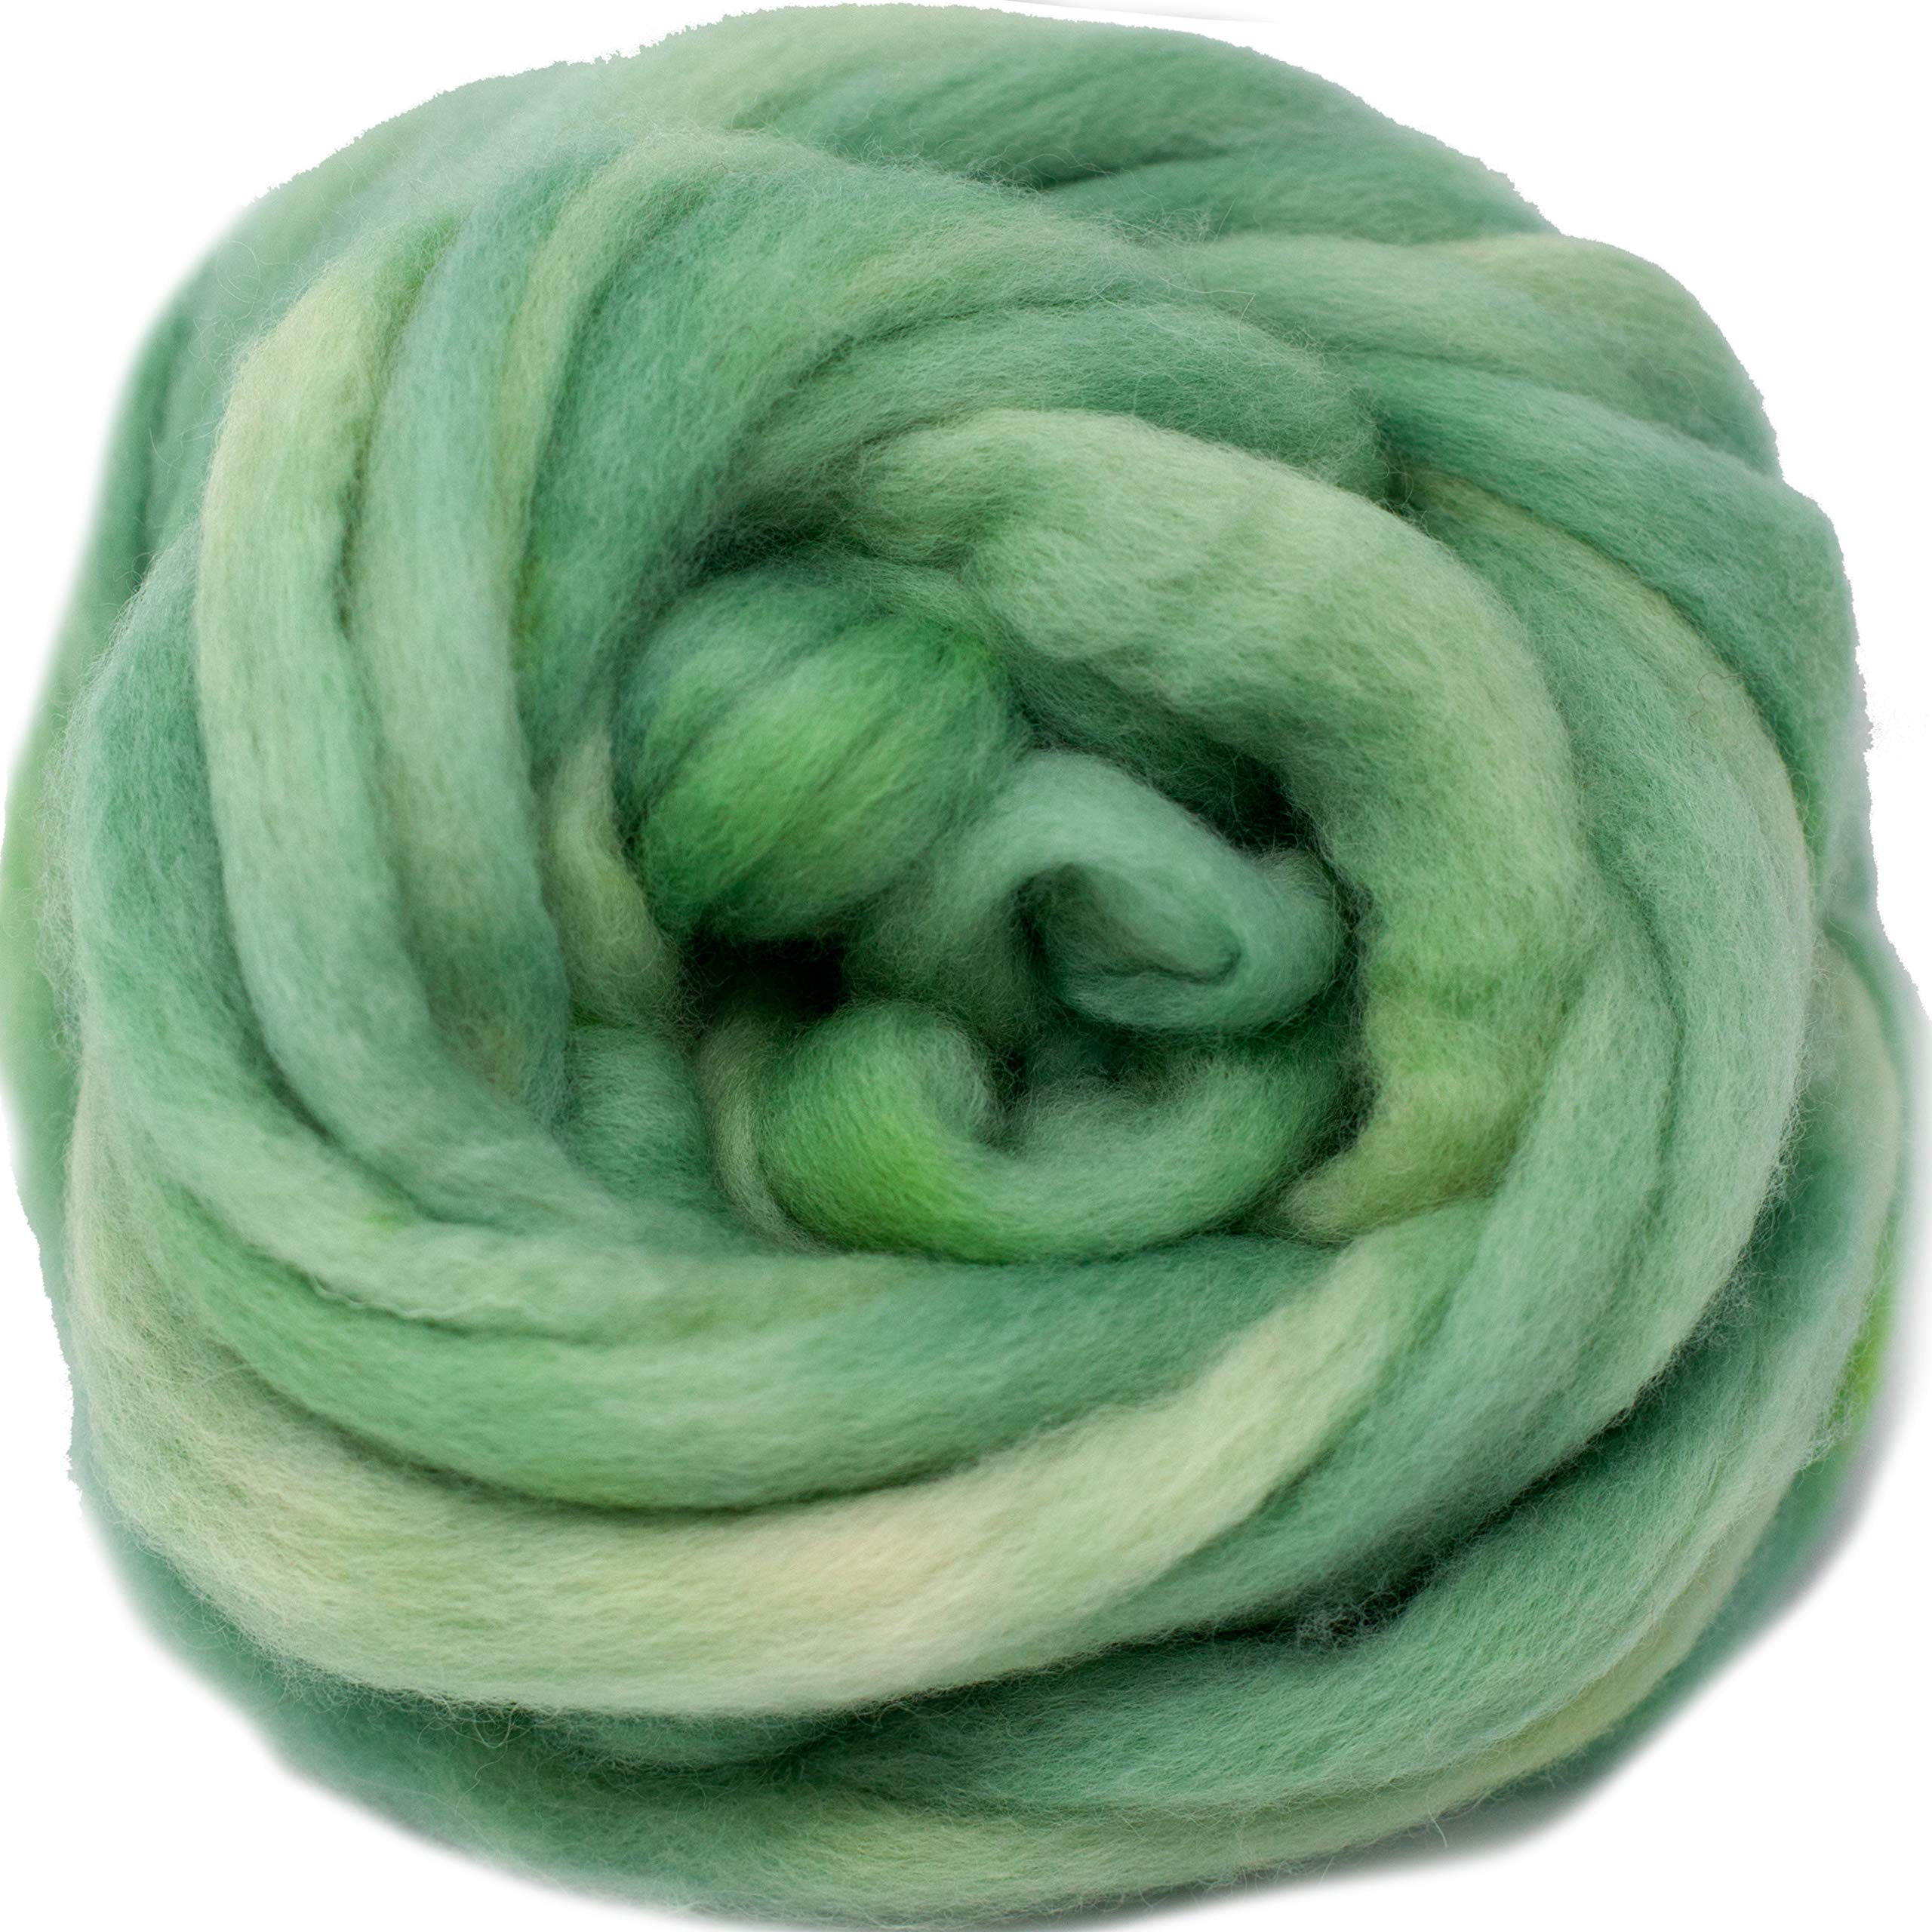 Wool Roving Hand Dyed. Super Soft BFL Combed Top Pre-Drafted for Easy Hand Spinning. Artisanal Craft Fiber ideal for Felting, Weaving, Wall Hangings and Embellishments. 4 Ounce. Ocean Green